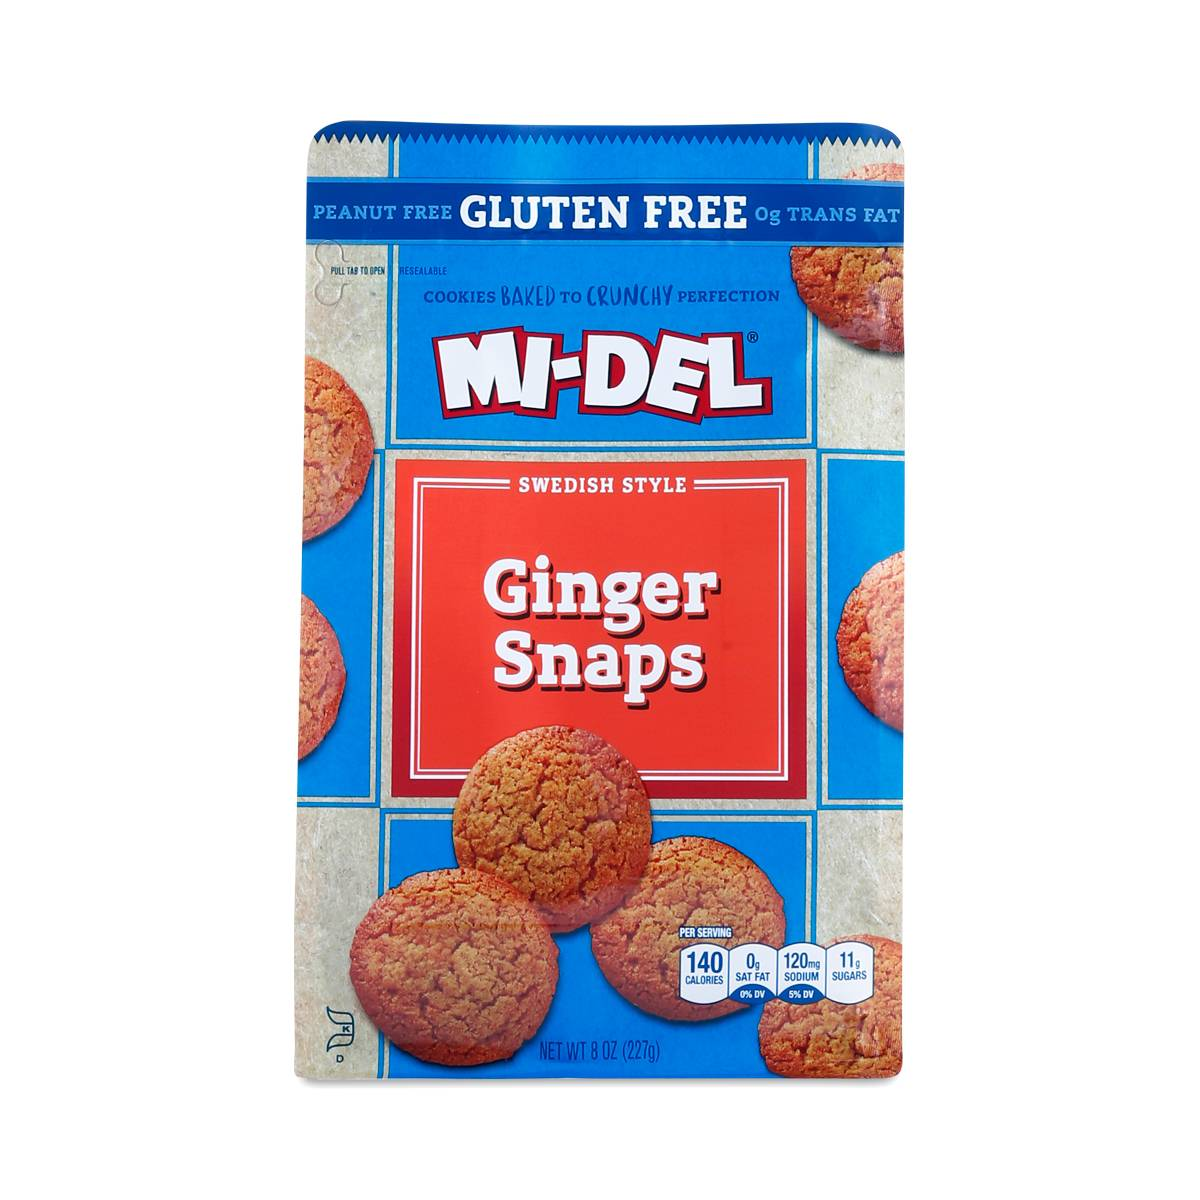 8 oz Gluten-Free Ginger Snaps by Midel - Thrive Market